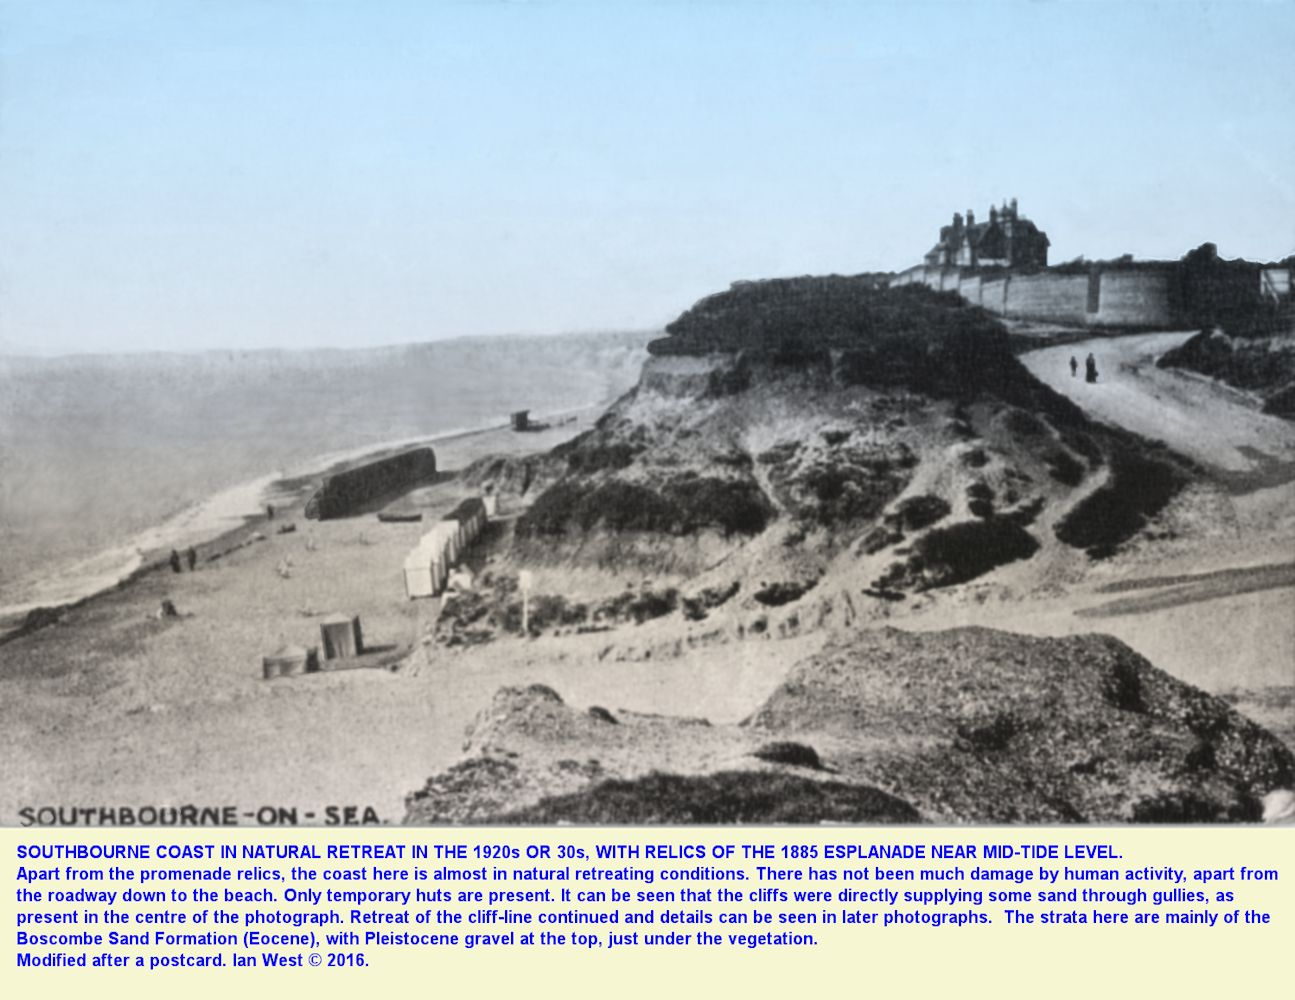 A view from the cliff top of the coast erosion and destruction of the old sea wall and promenade at Southbourne, Bournemouth, Dorset, probably in about the late 1920s